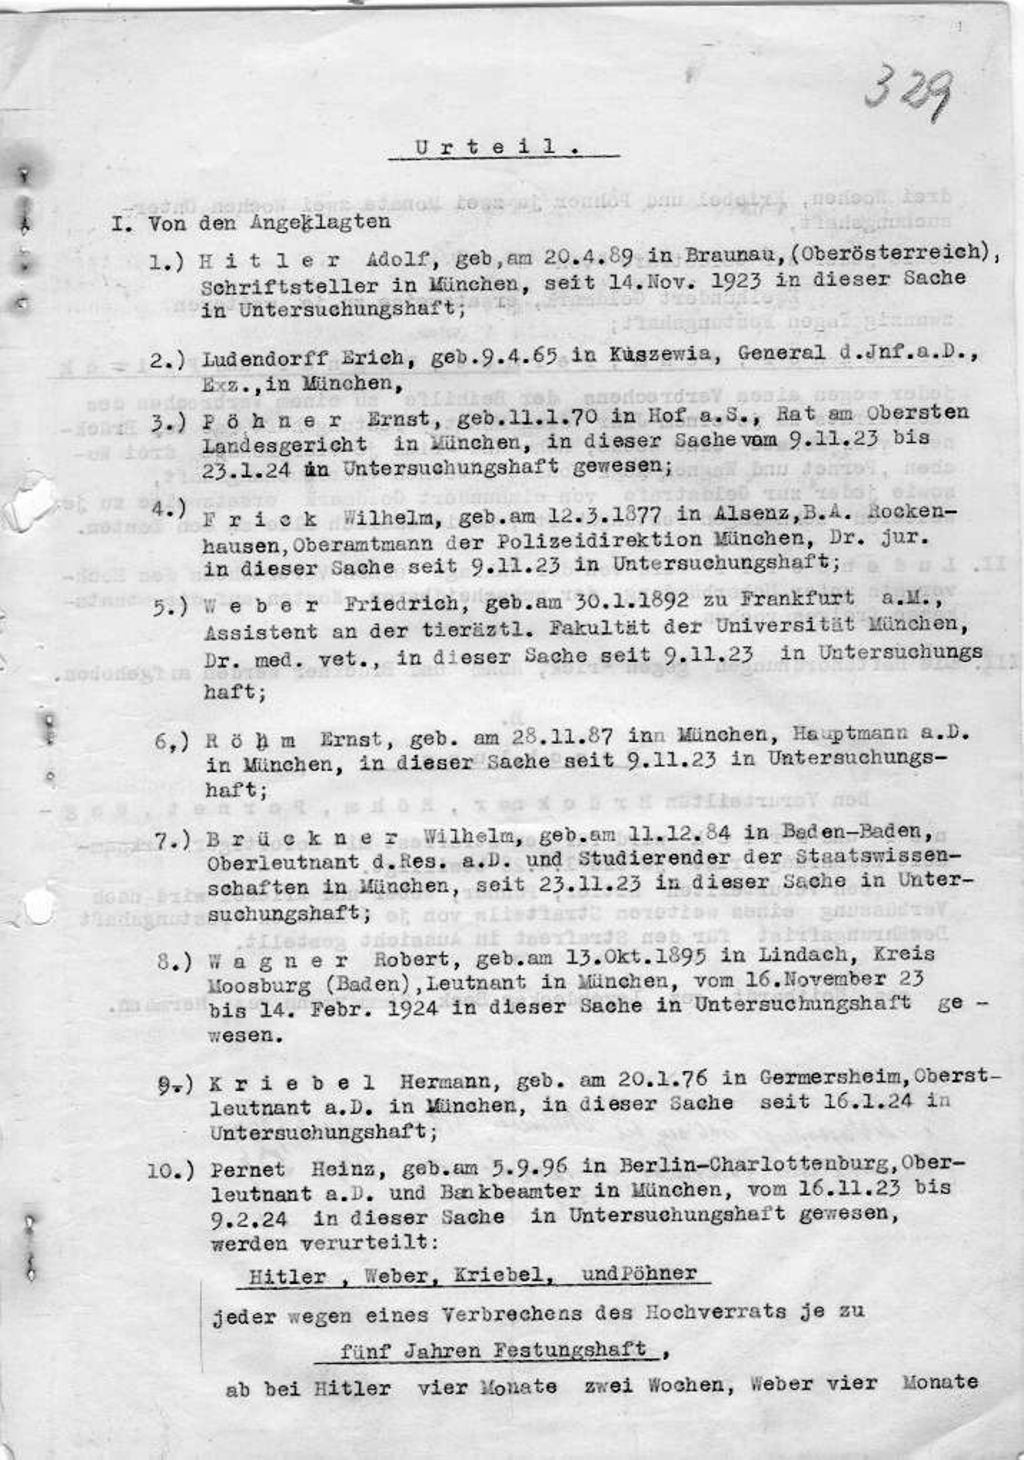 Cover sheet of the judgment of the putsch trial listing personal details of the accused and their sentence